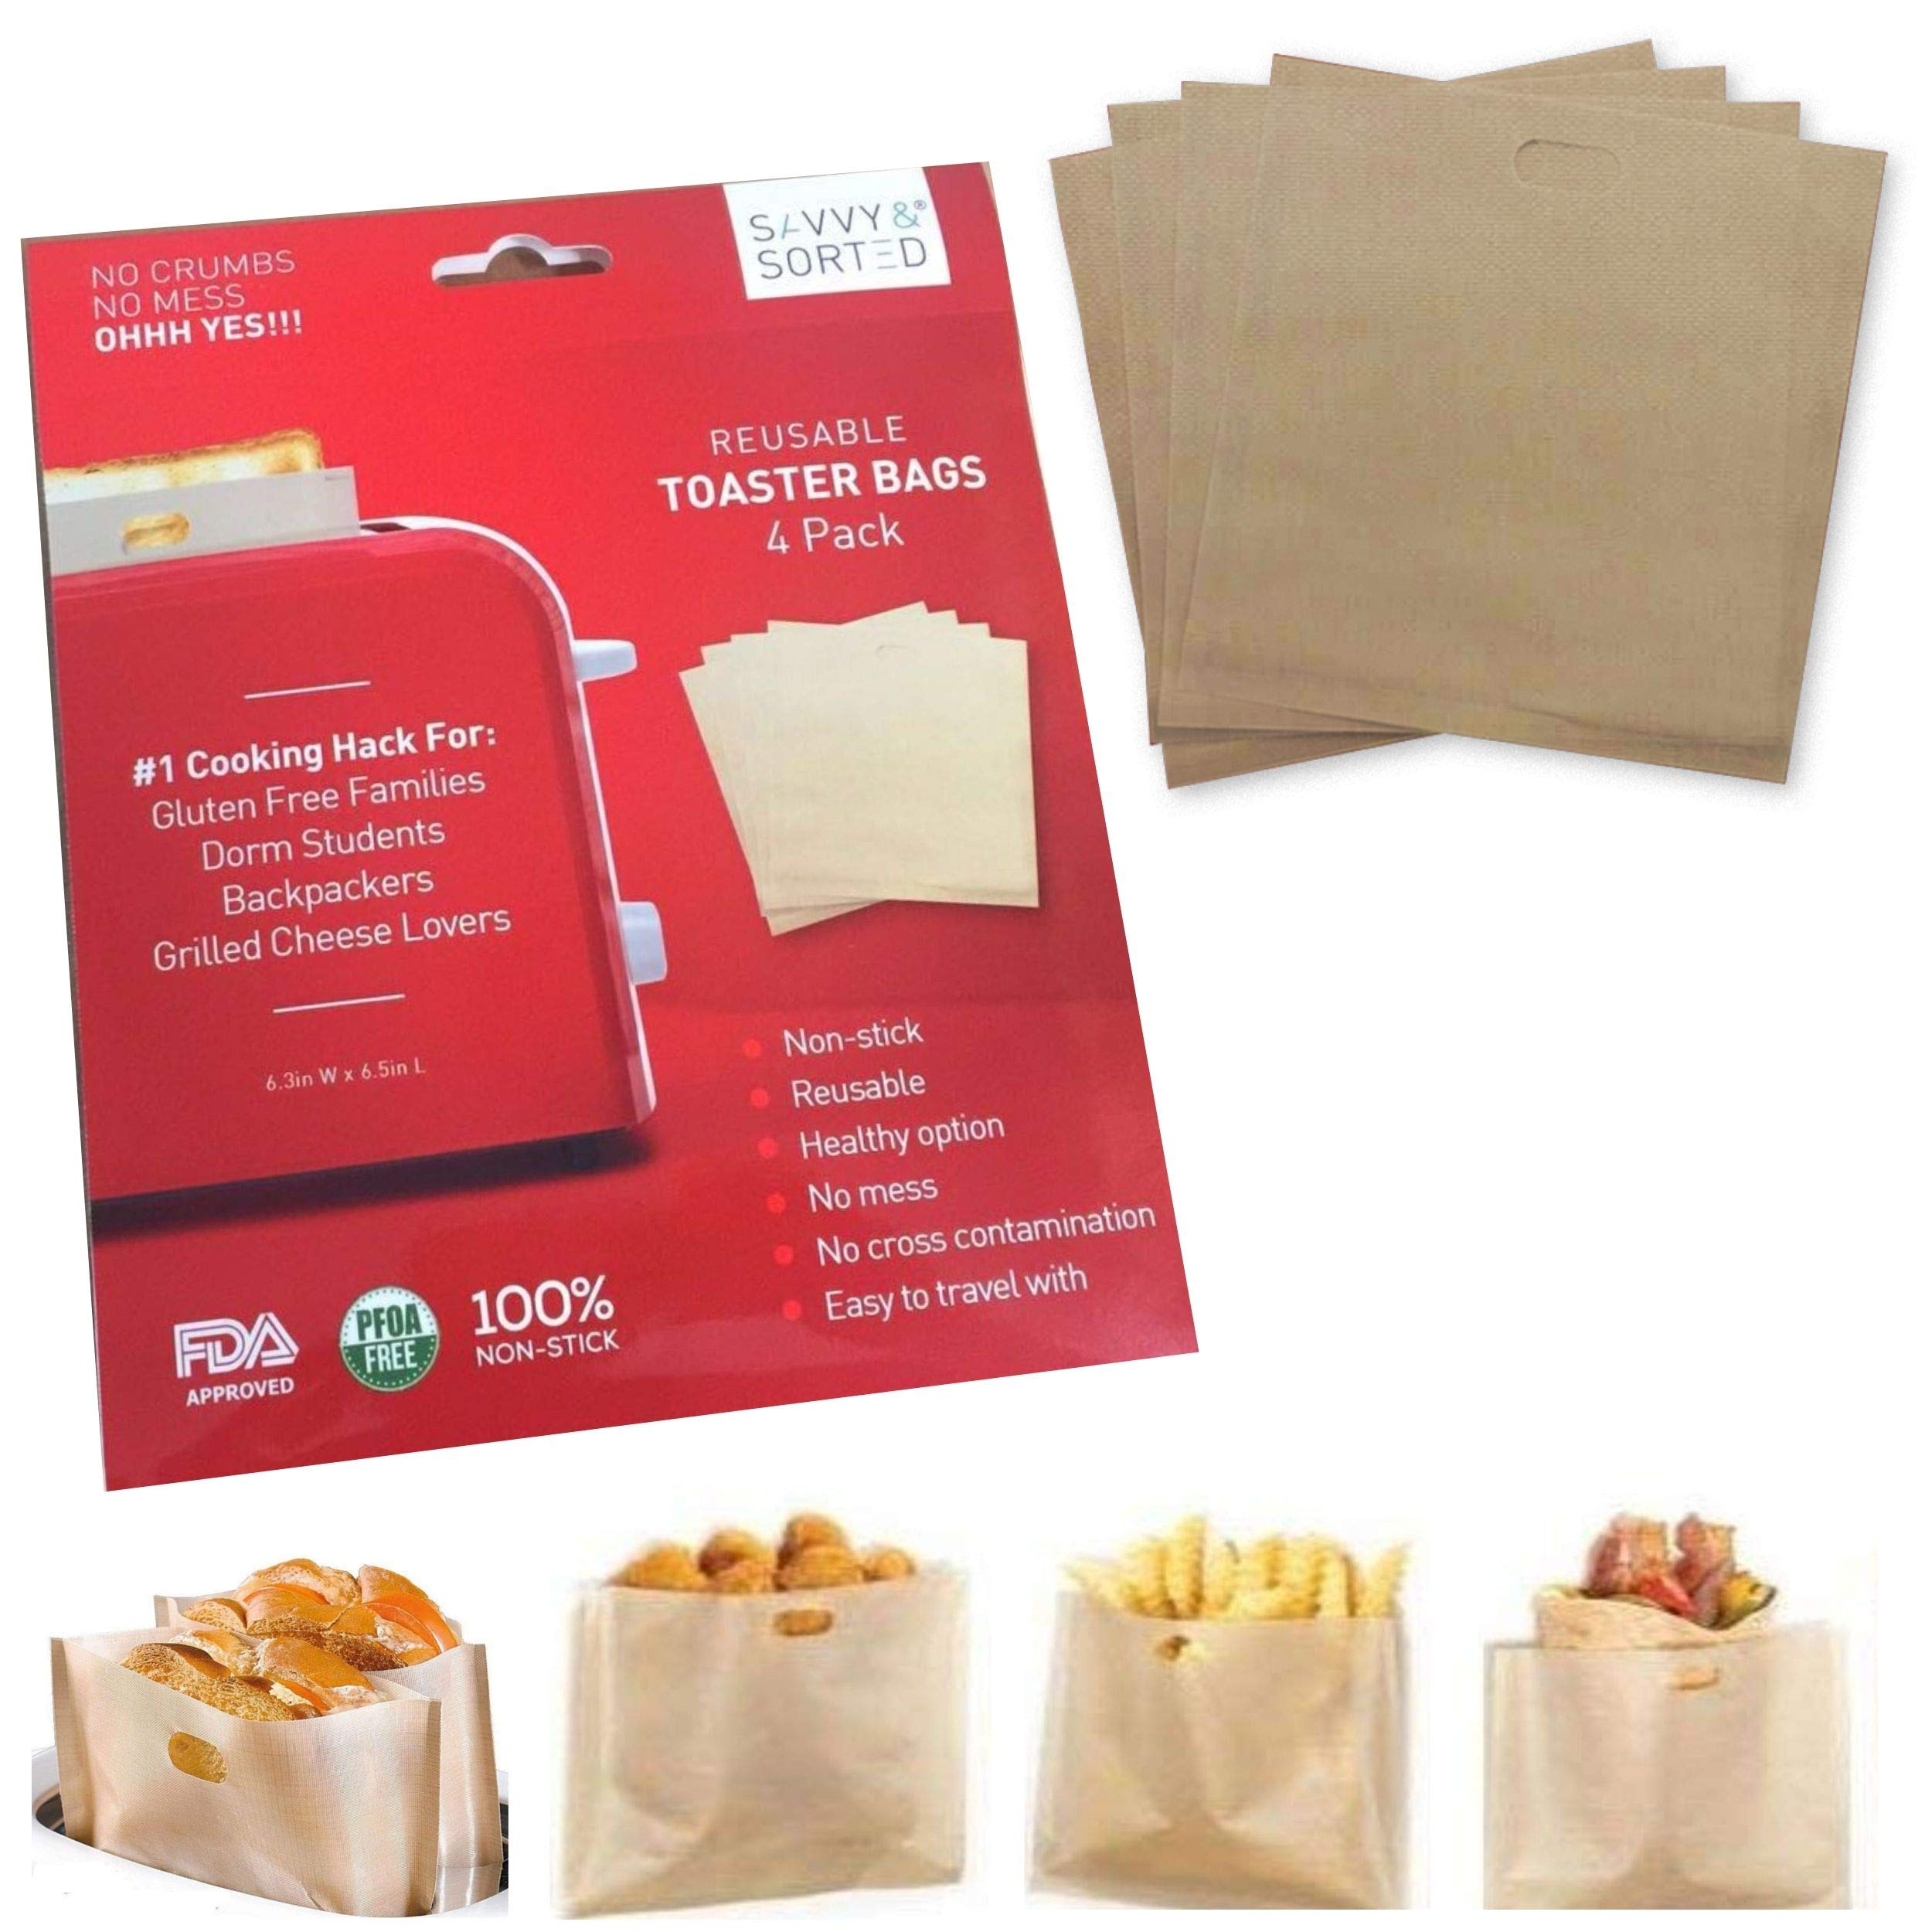 ekSel Toaster Bags Reusable Non-stick Gluten Free Nuggets Chicken Garlic Toasts FDA Approved BPA free Pack of 15 Perfect for Grilled Cheese Sandwiches FDA Approved